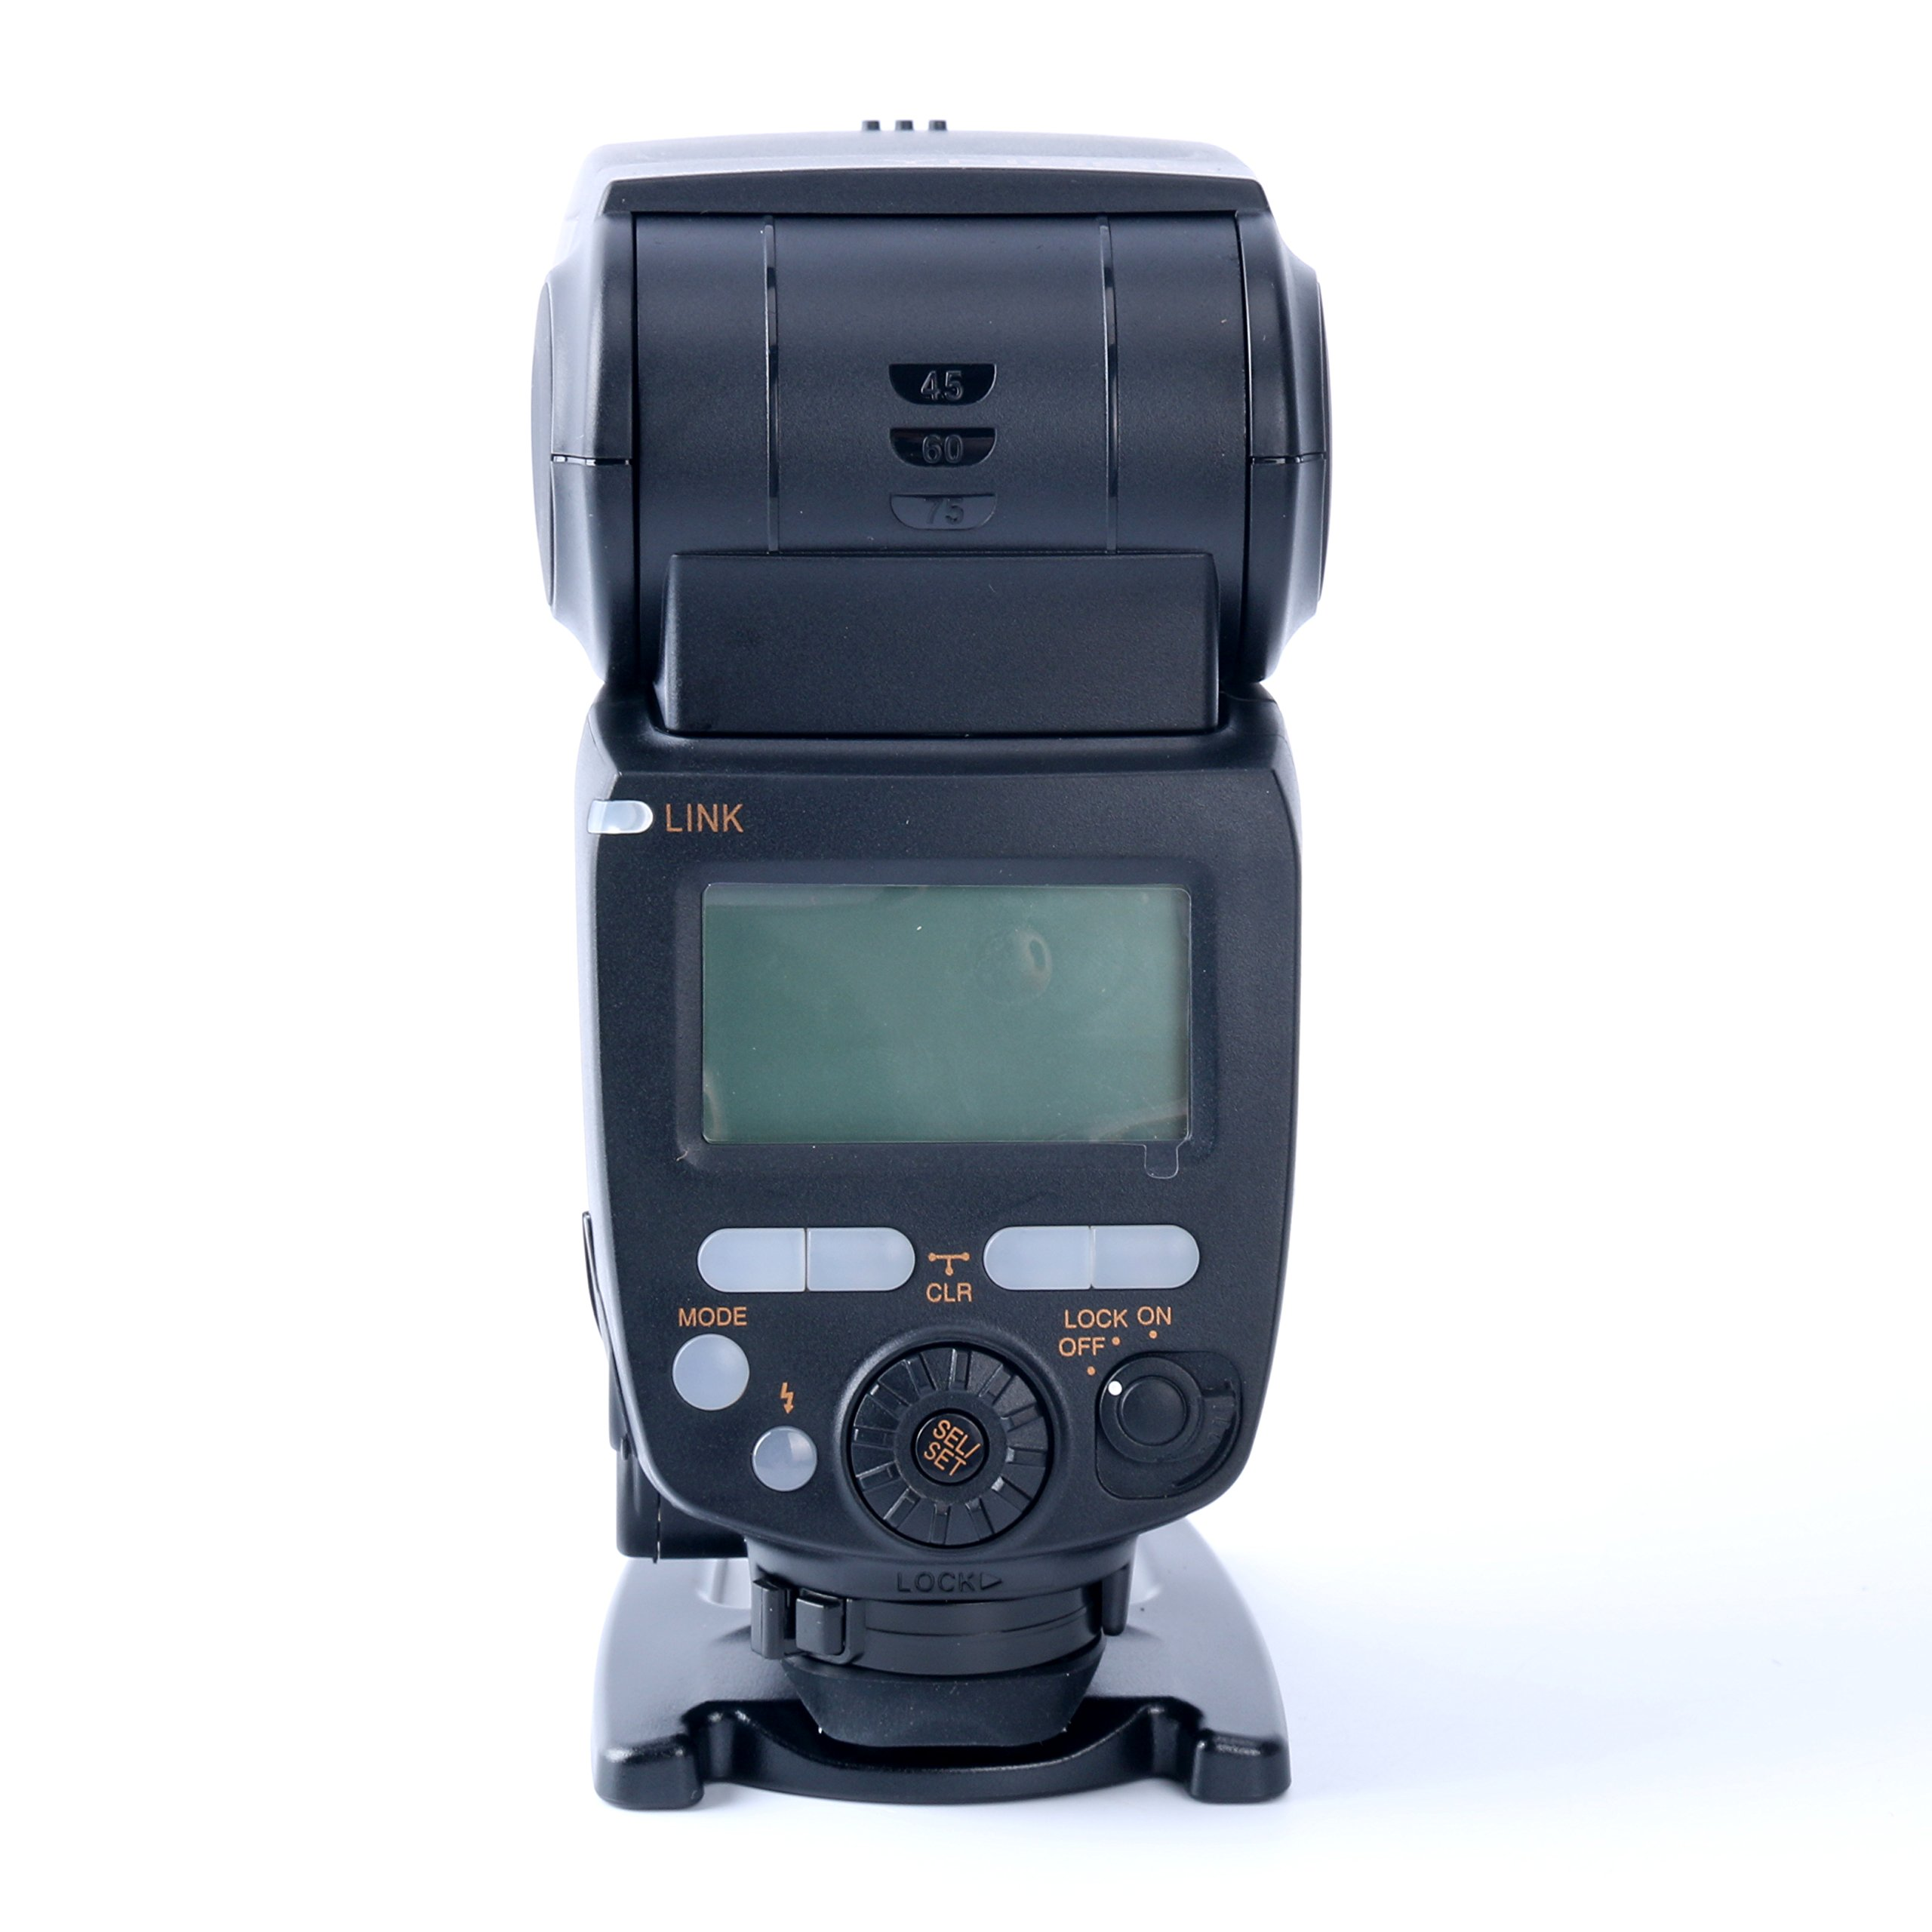 YONGNUO YN685 N GN60 2.4G System i-TTL HSS Wireless Flash Speedlite with Radio Slave for Nikon by Yongnuo